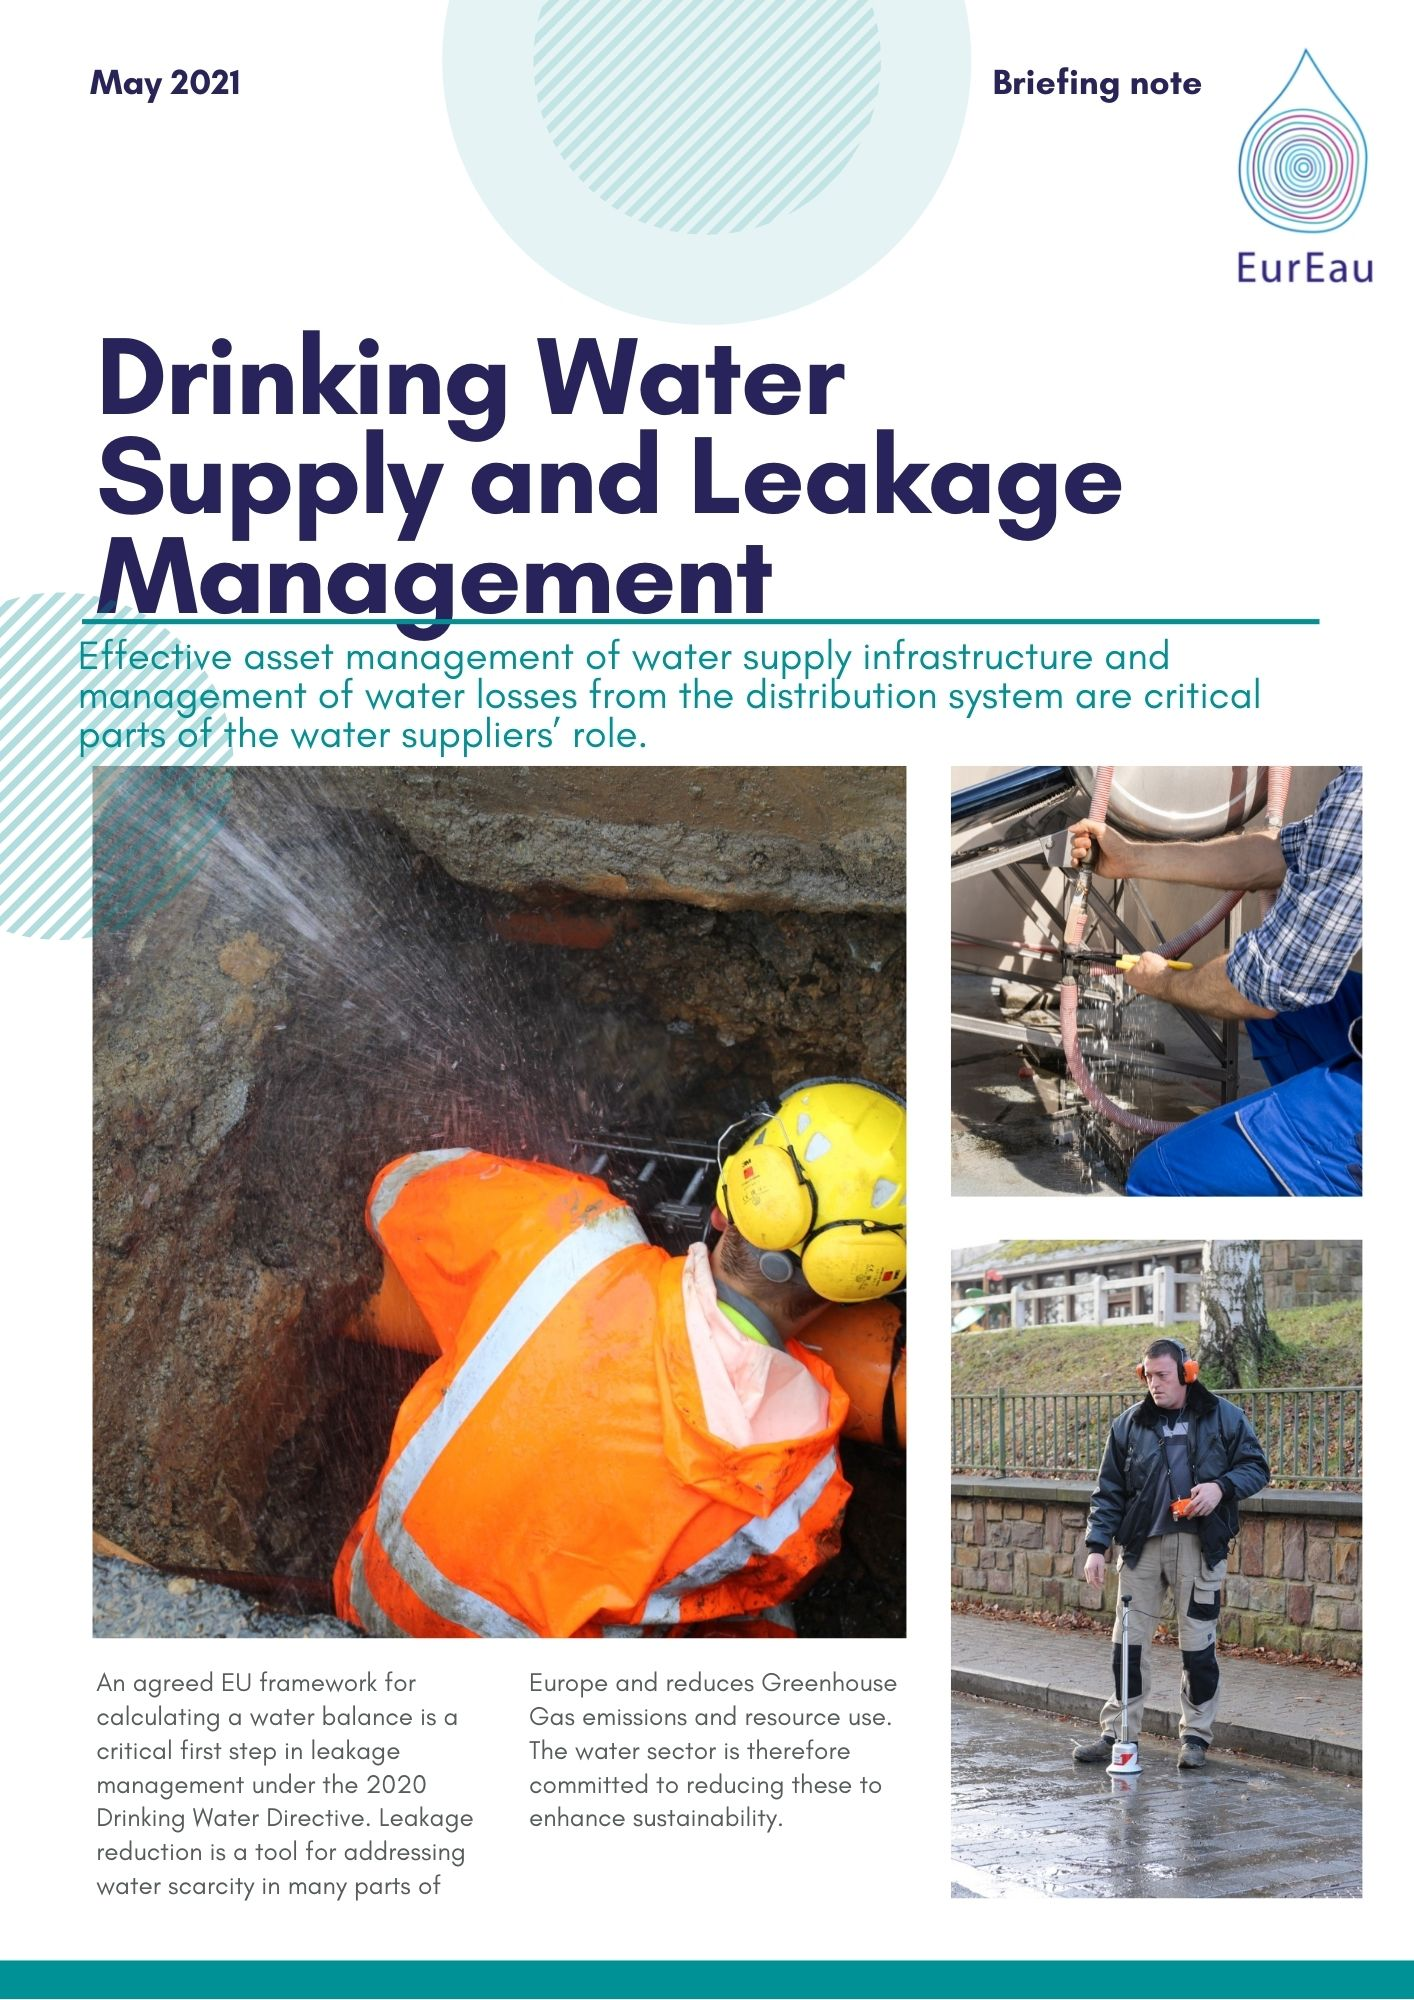 Briefing Note on Drinking Water Supply and Leakage Management